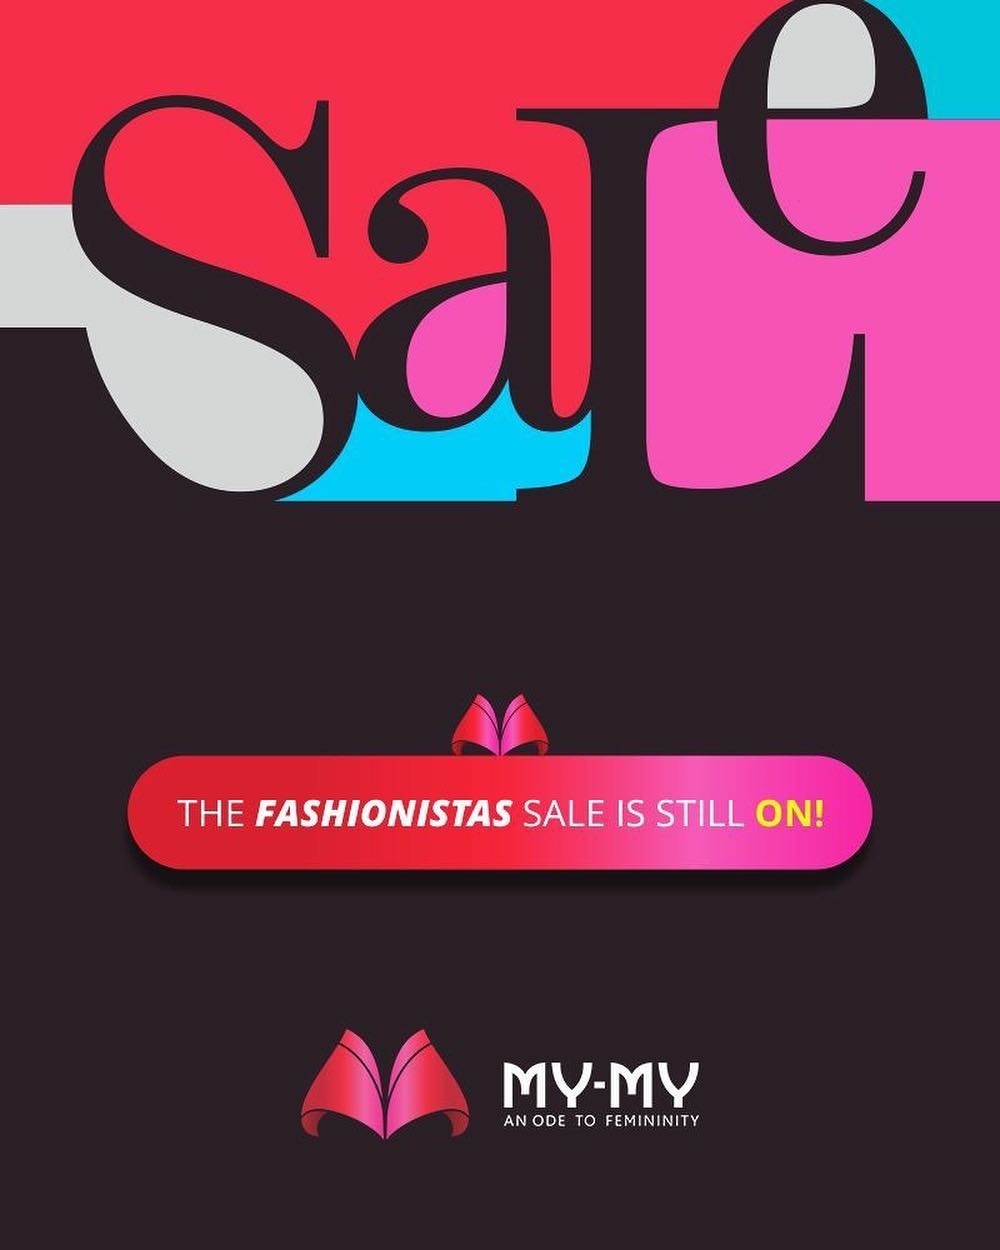 Gear up! My-My Sale is still on. Head out to our store for amazing offers  #MYMYSale #MyMy #MyMyAhmedabad #Fashion #Ahmedabad #FemaleFashion